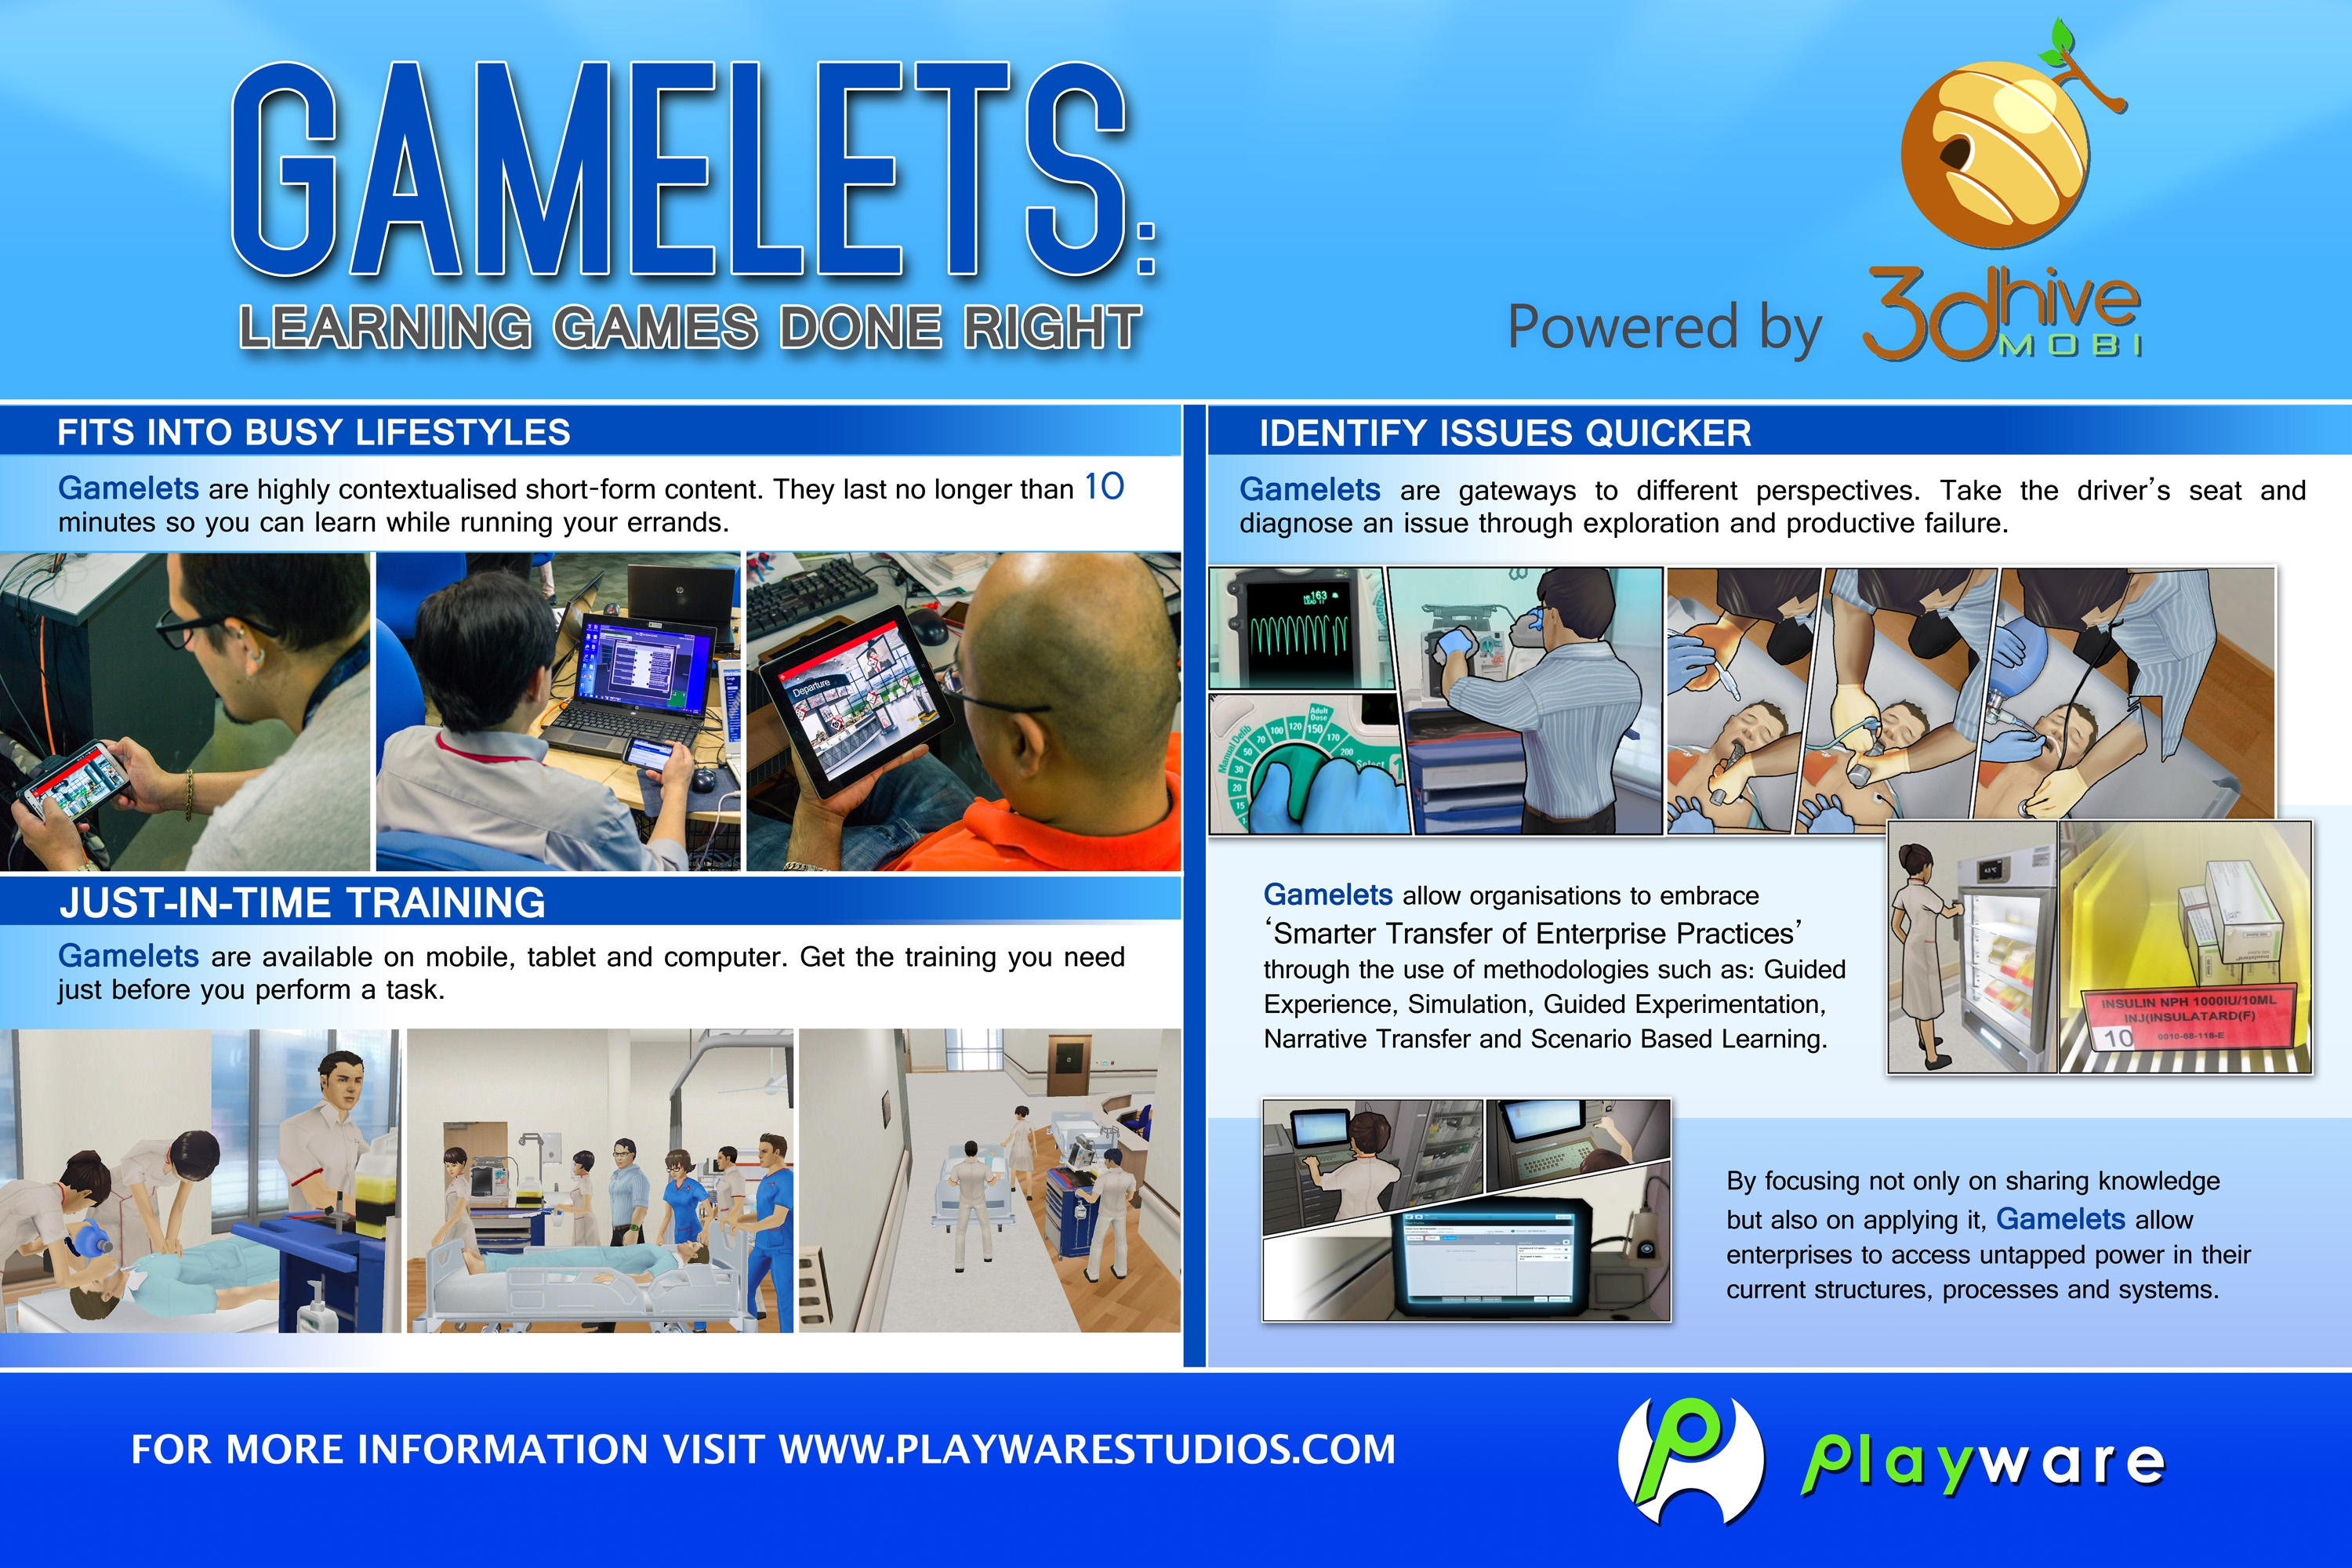 Gamelets for corporate training